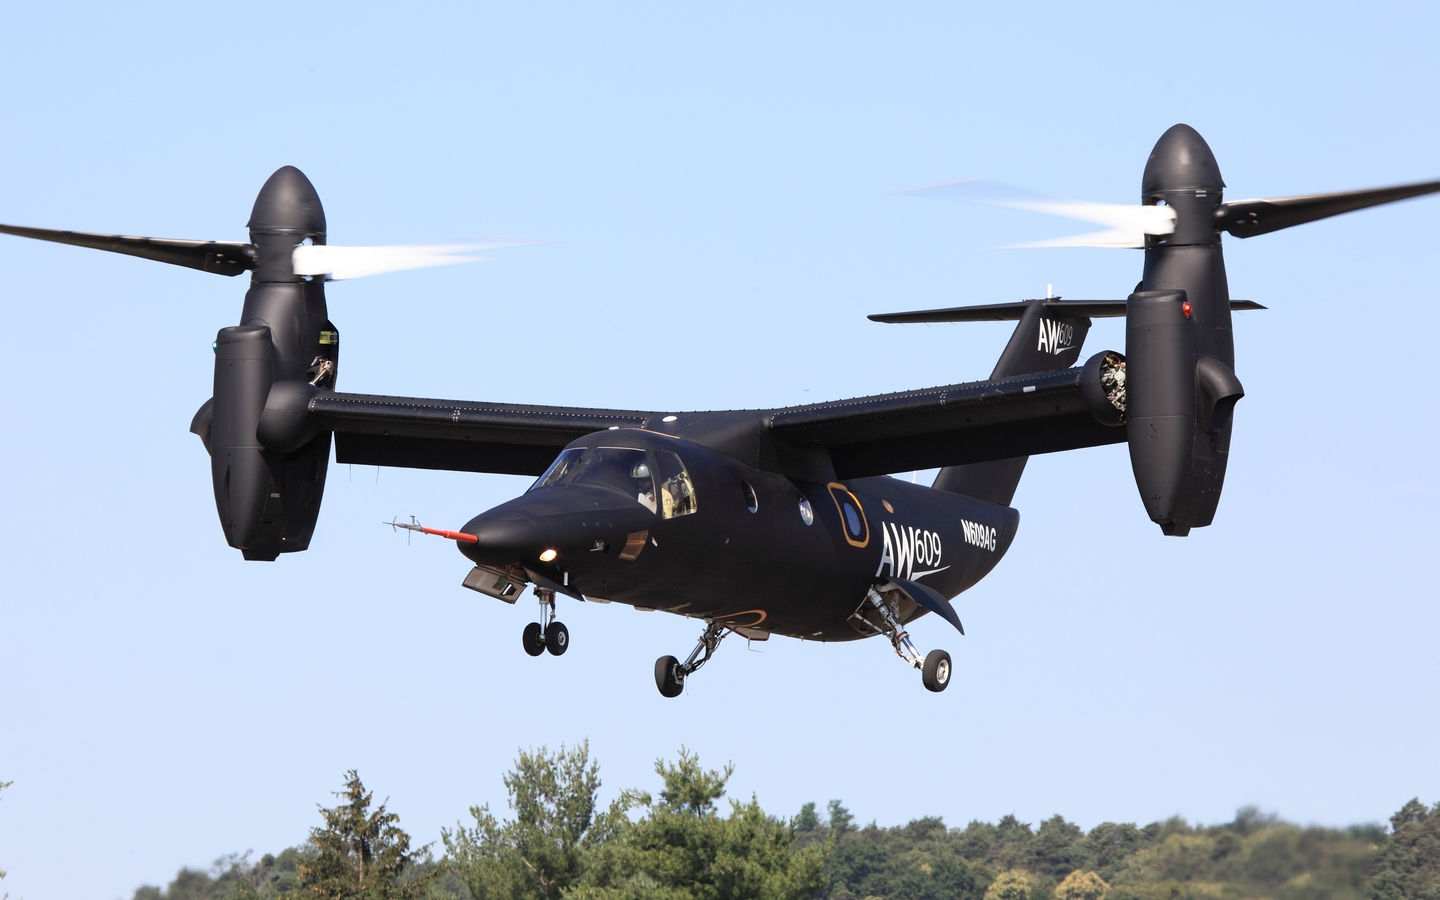 Italy Armed Forces thread: AW609